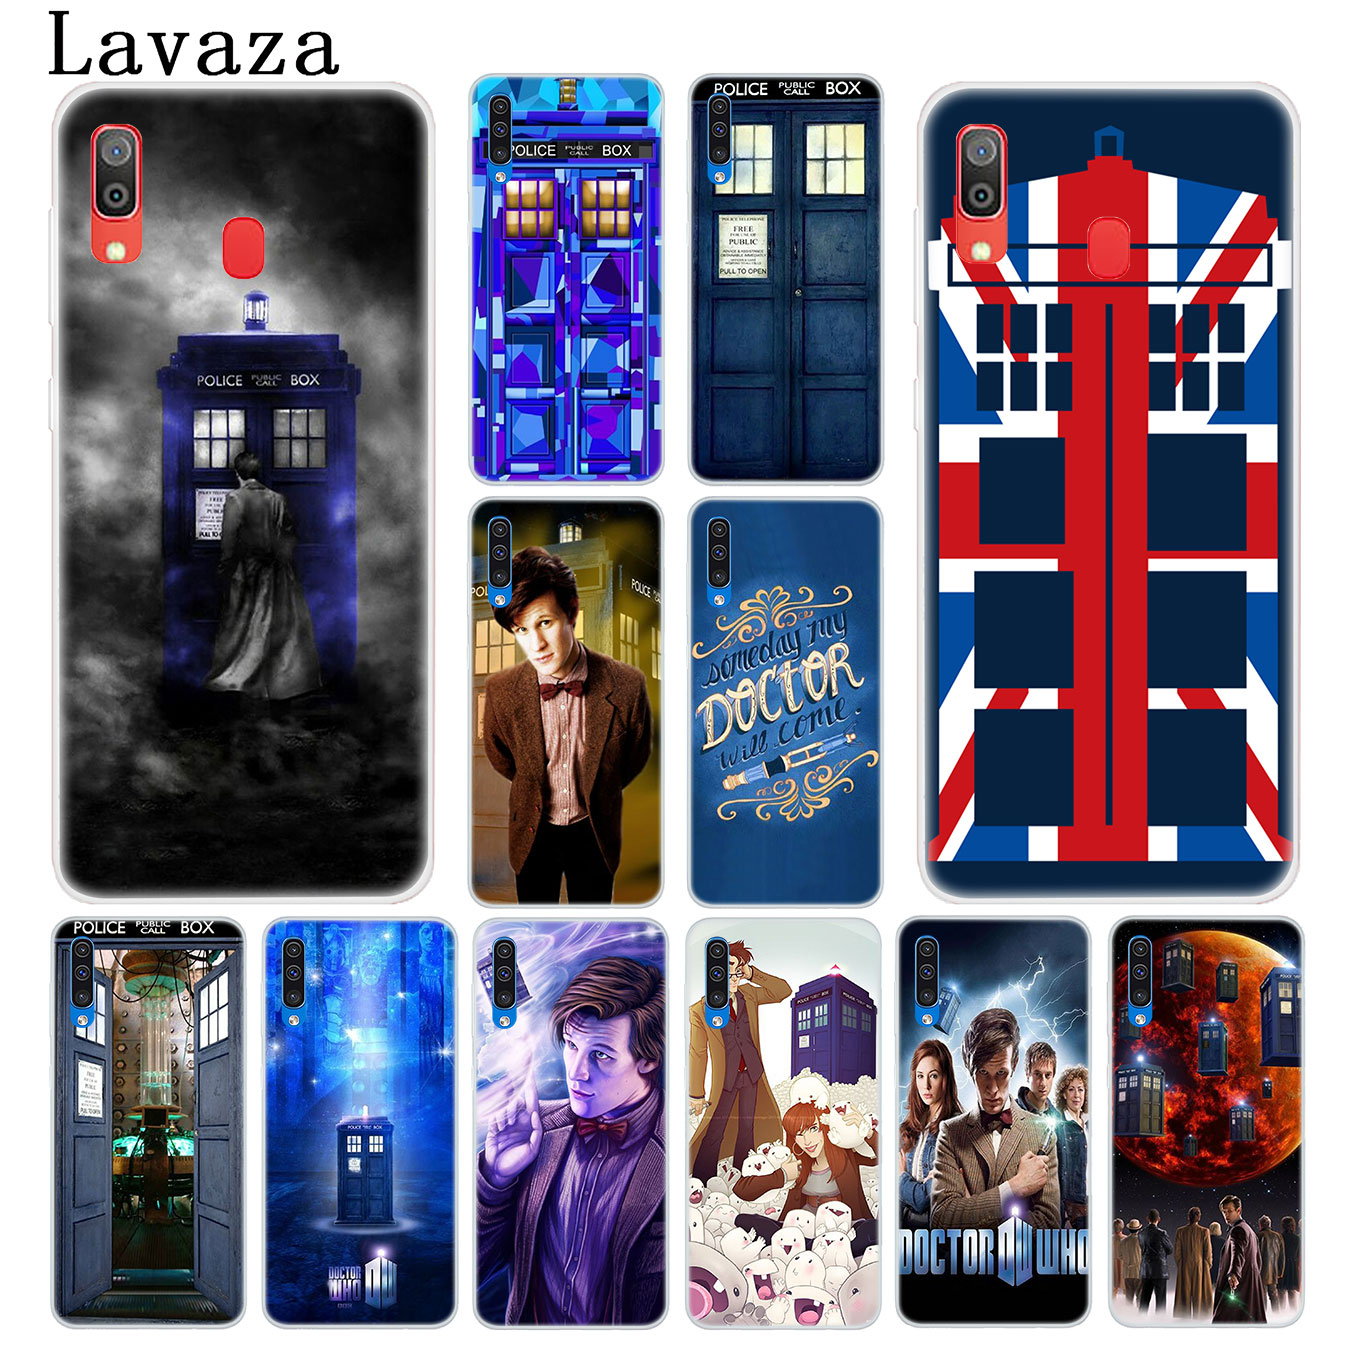 Half-wrapped Case Phone Bags & Cases Lavaza Tardis Box Doctor Who Hard Transparent Phone Case For Samsung Galaxy M30 M20 M10 A10 A30 A40 A50 A70 Cover Factories And Mines